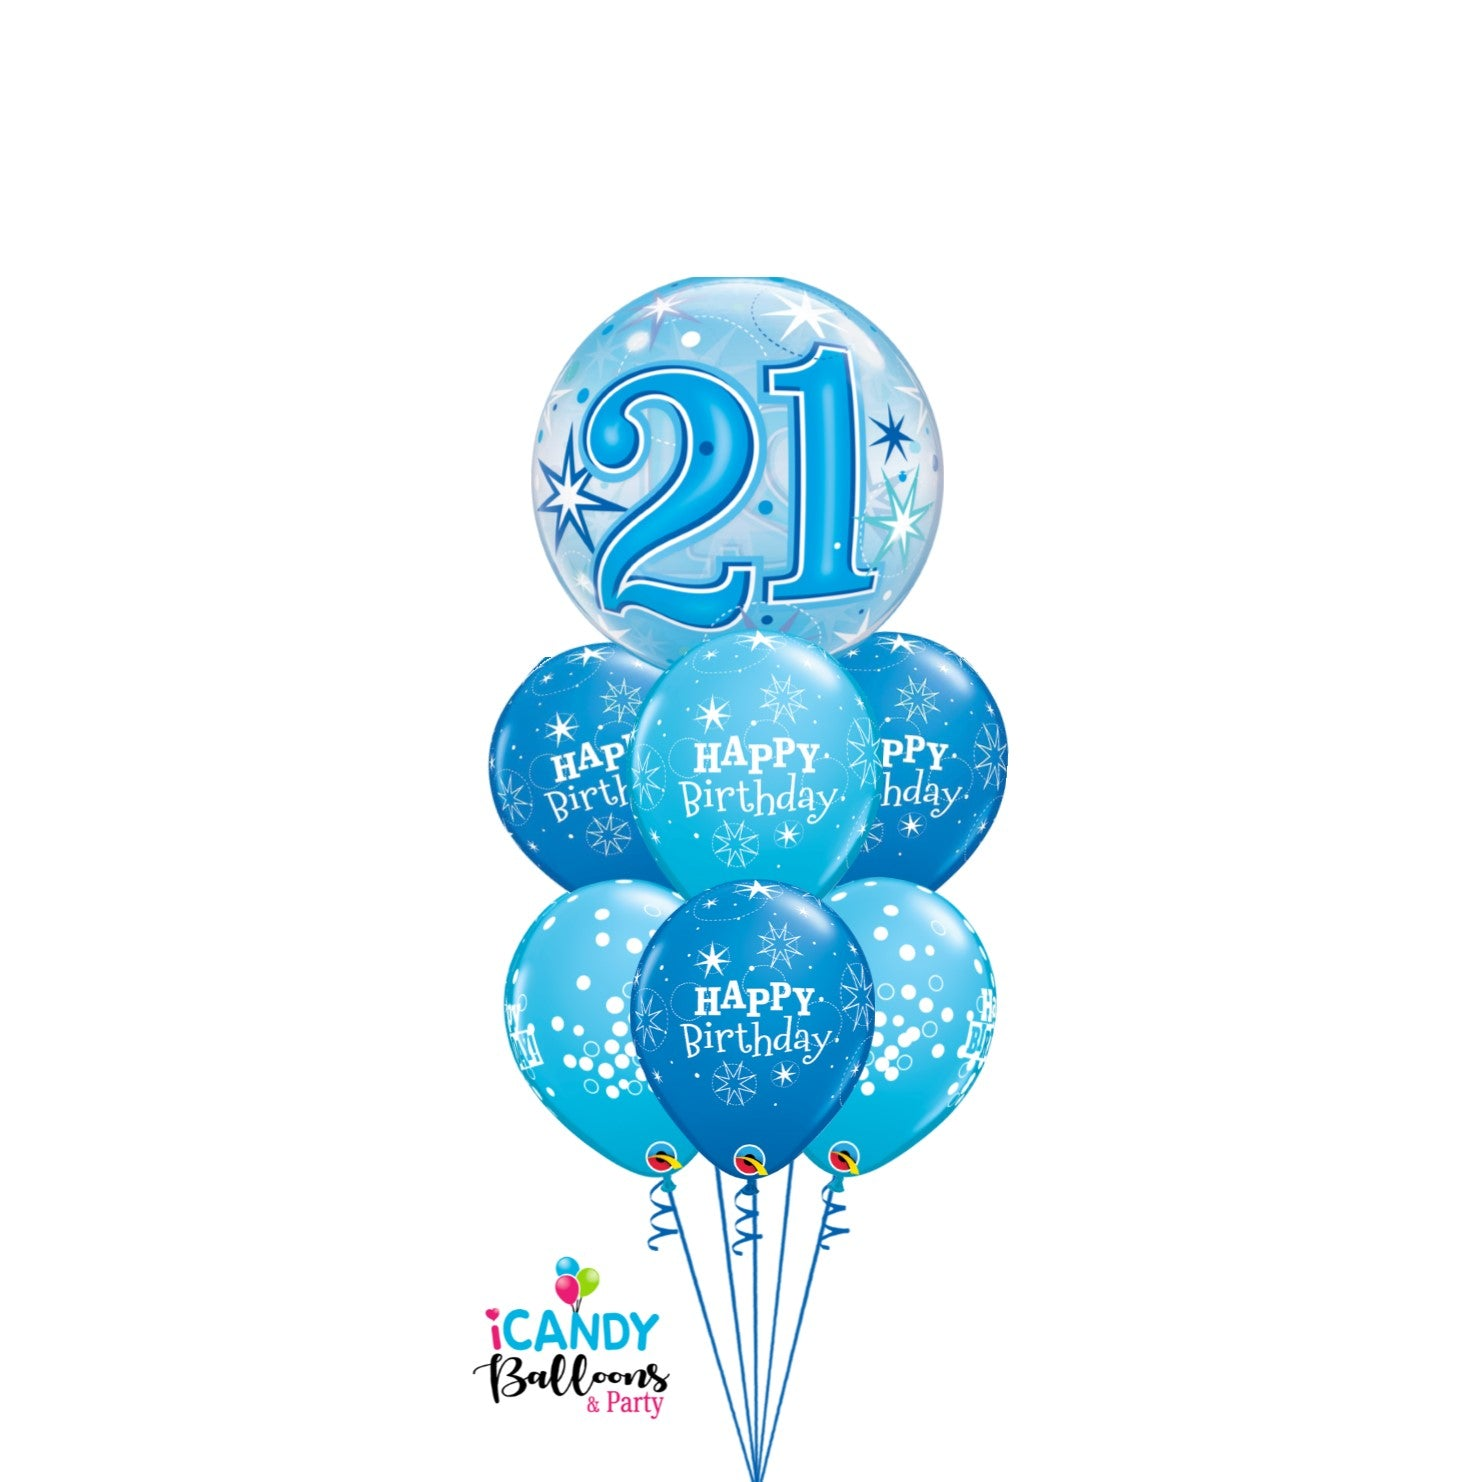 21st Birthday Balloons & Party Supplies